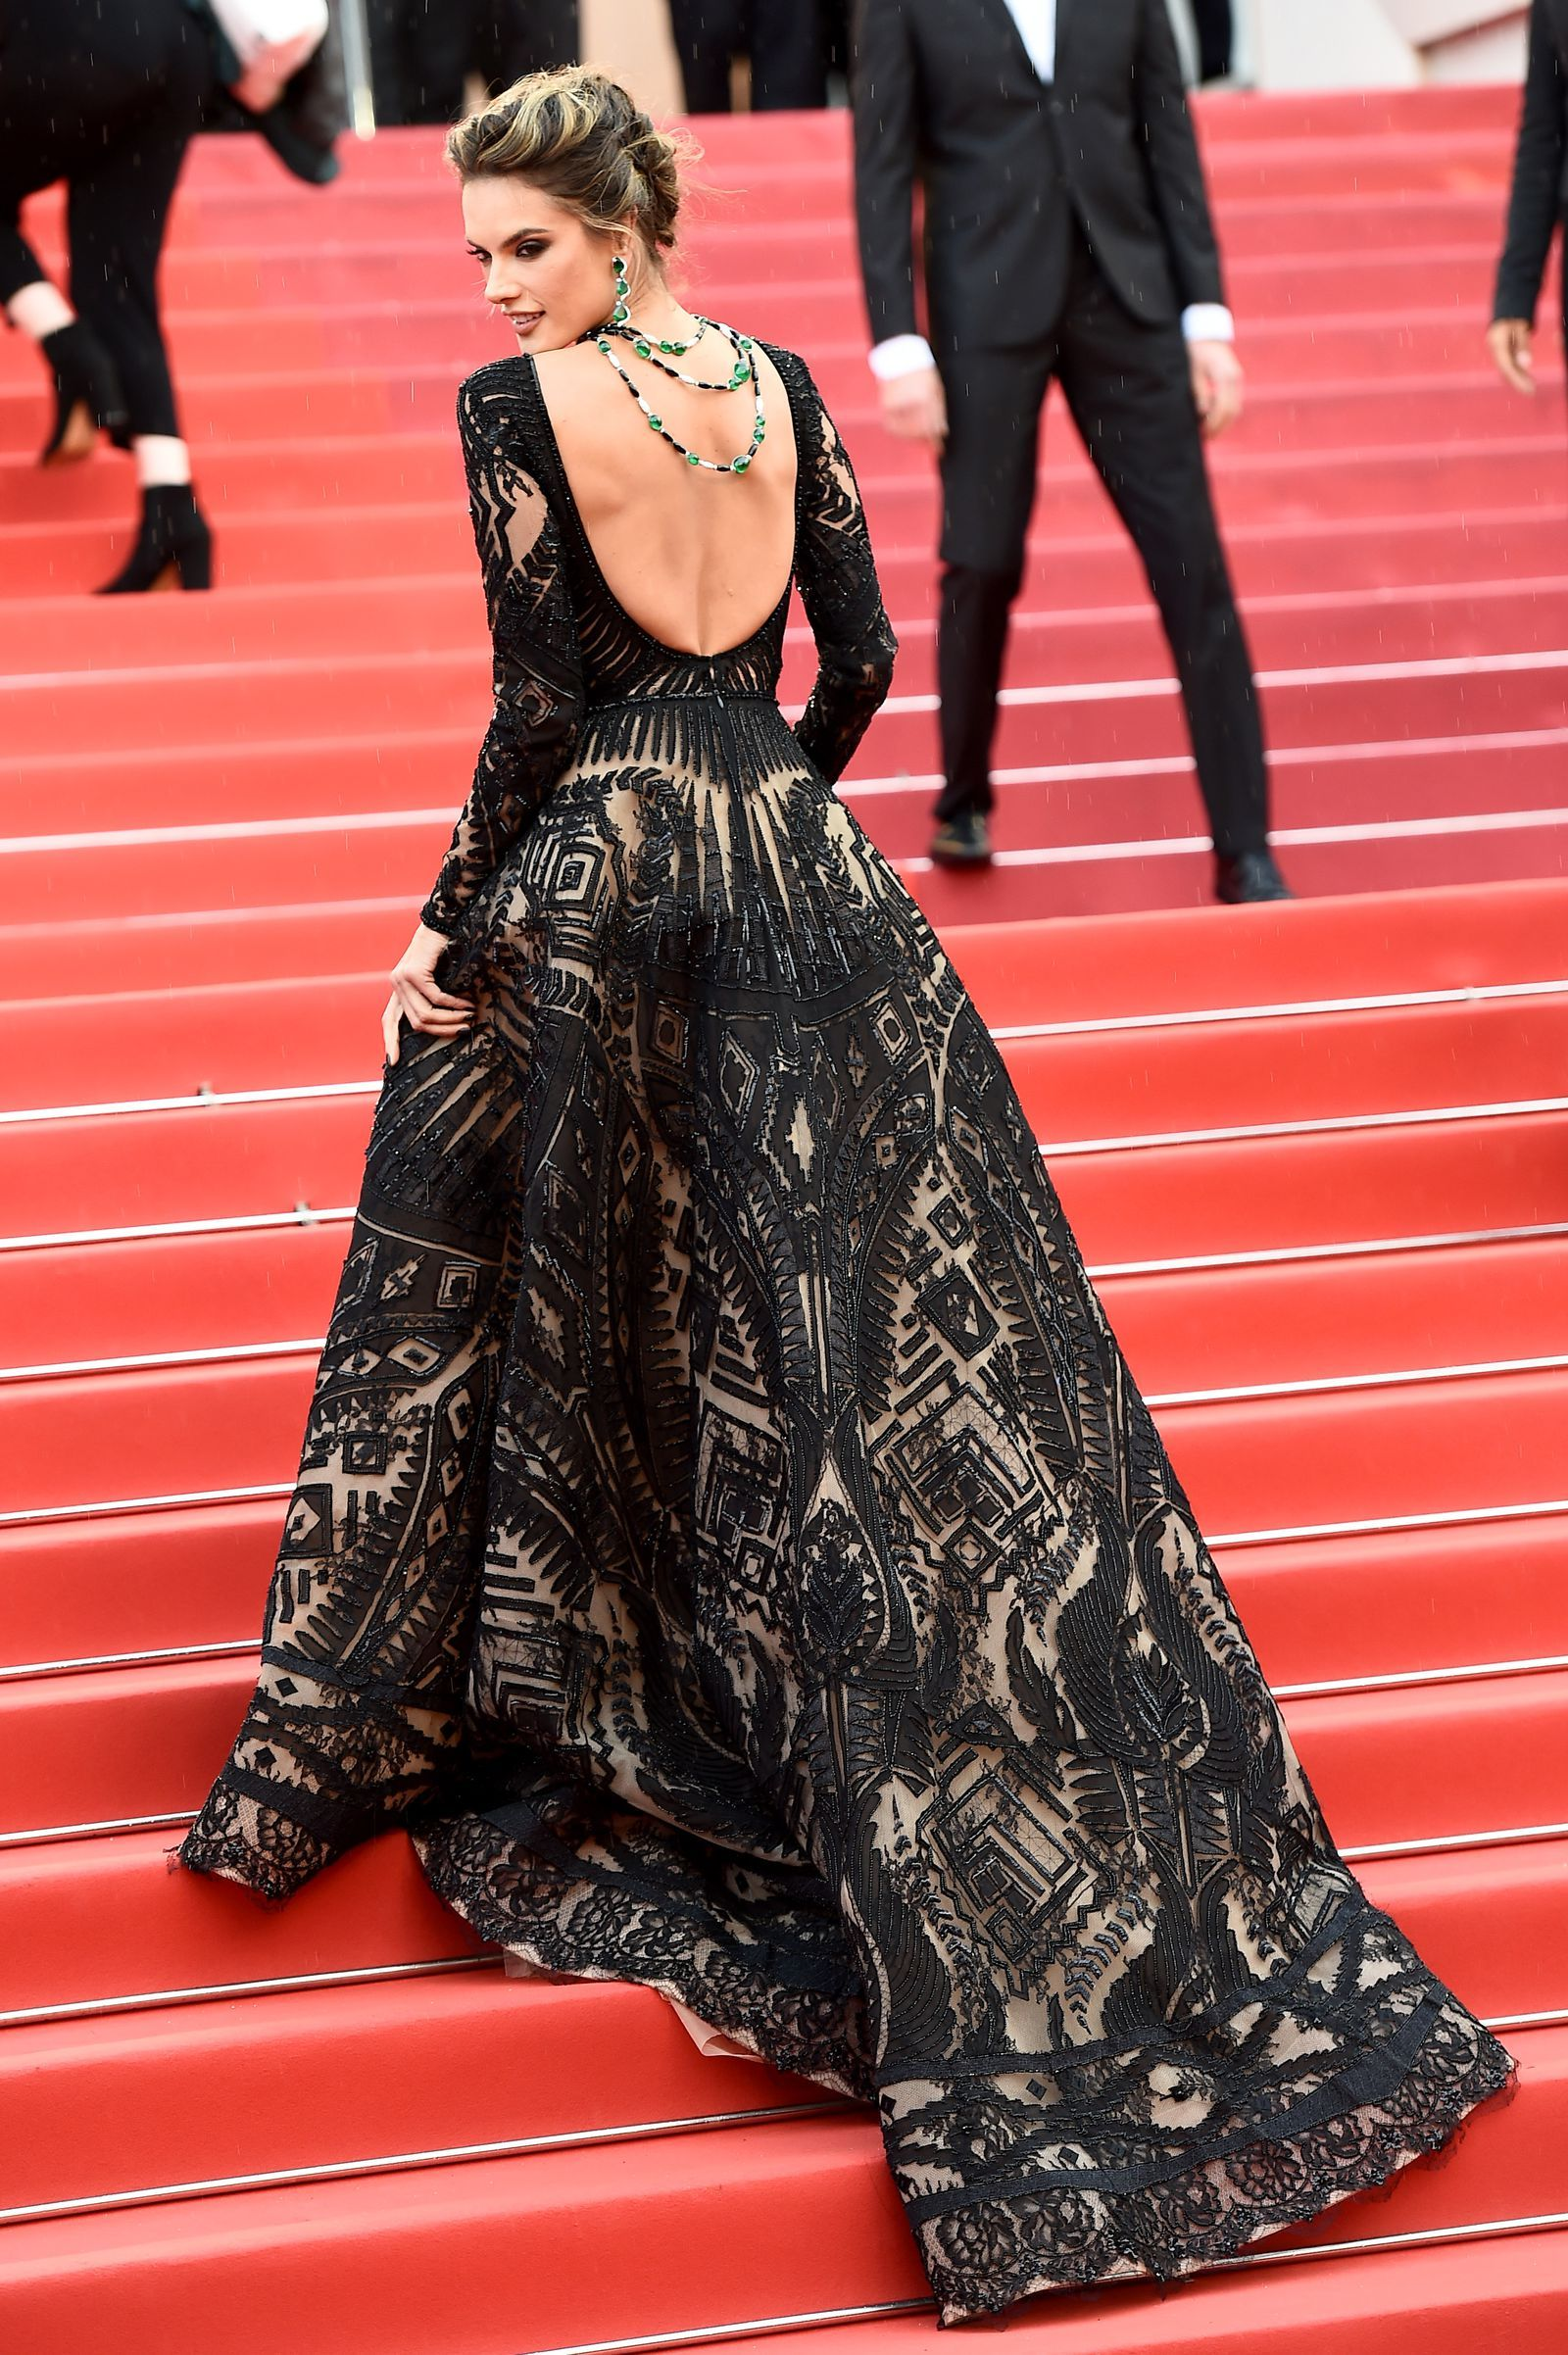 The Most Glamorous Looks At The Amfar Cannes Gala Fashion Gowns Red Carpet Dresses Nice Dresses